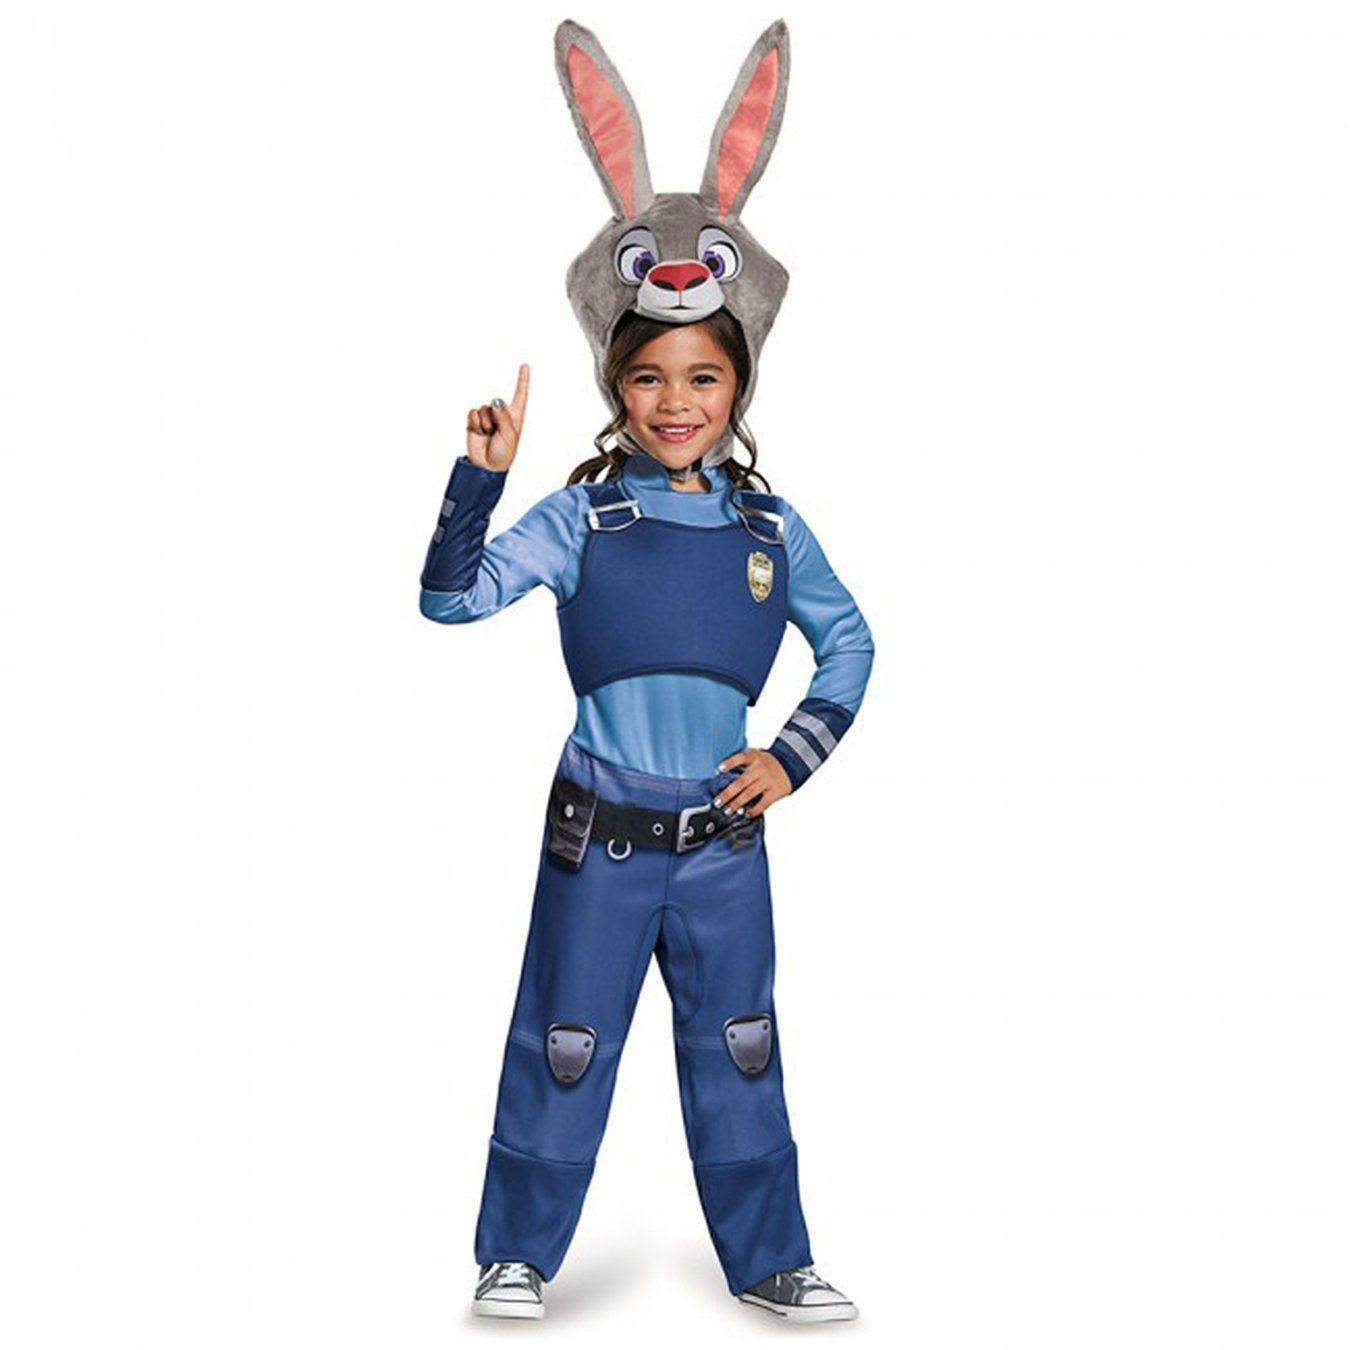 35 disney halloween costumes - best disney costumes for halloween 2018